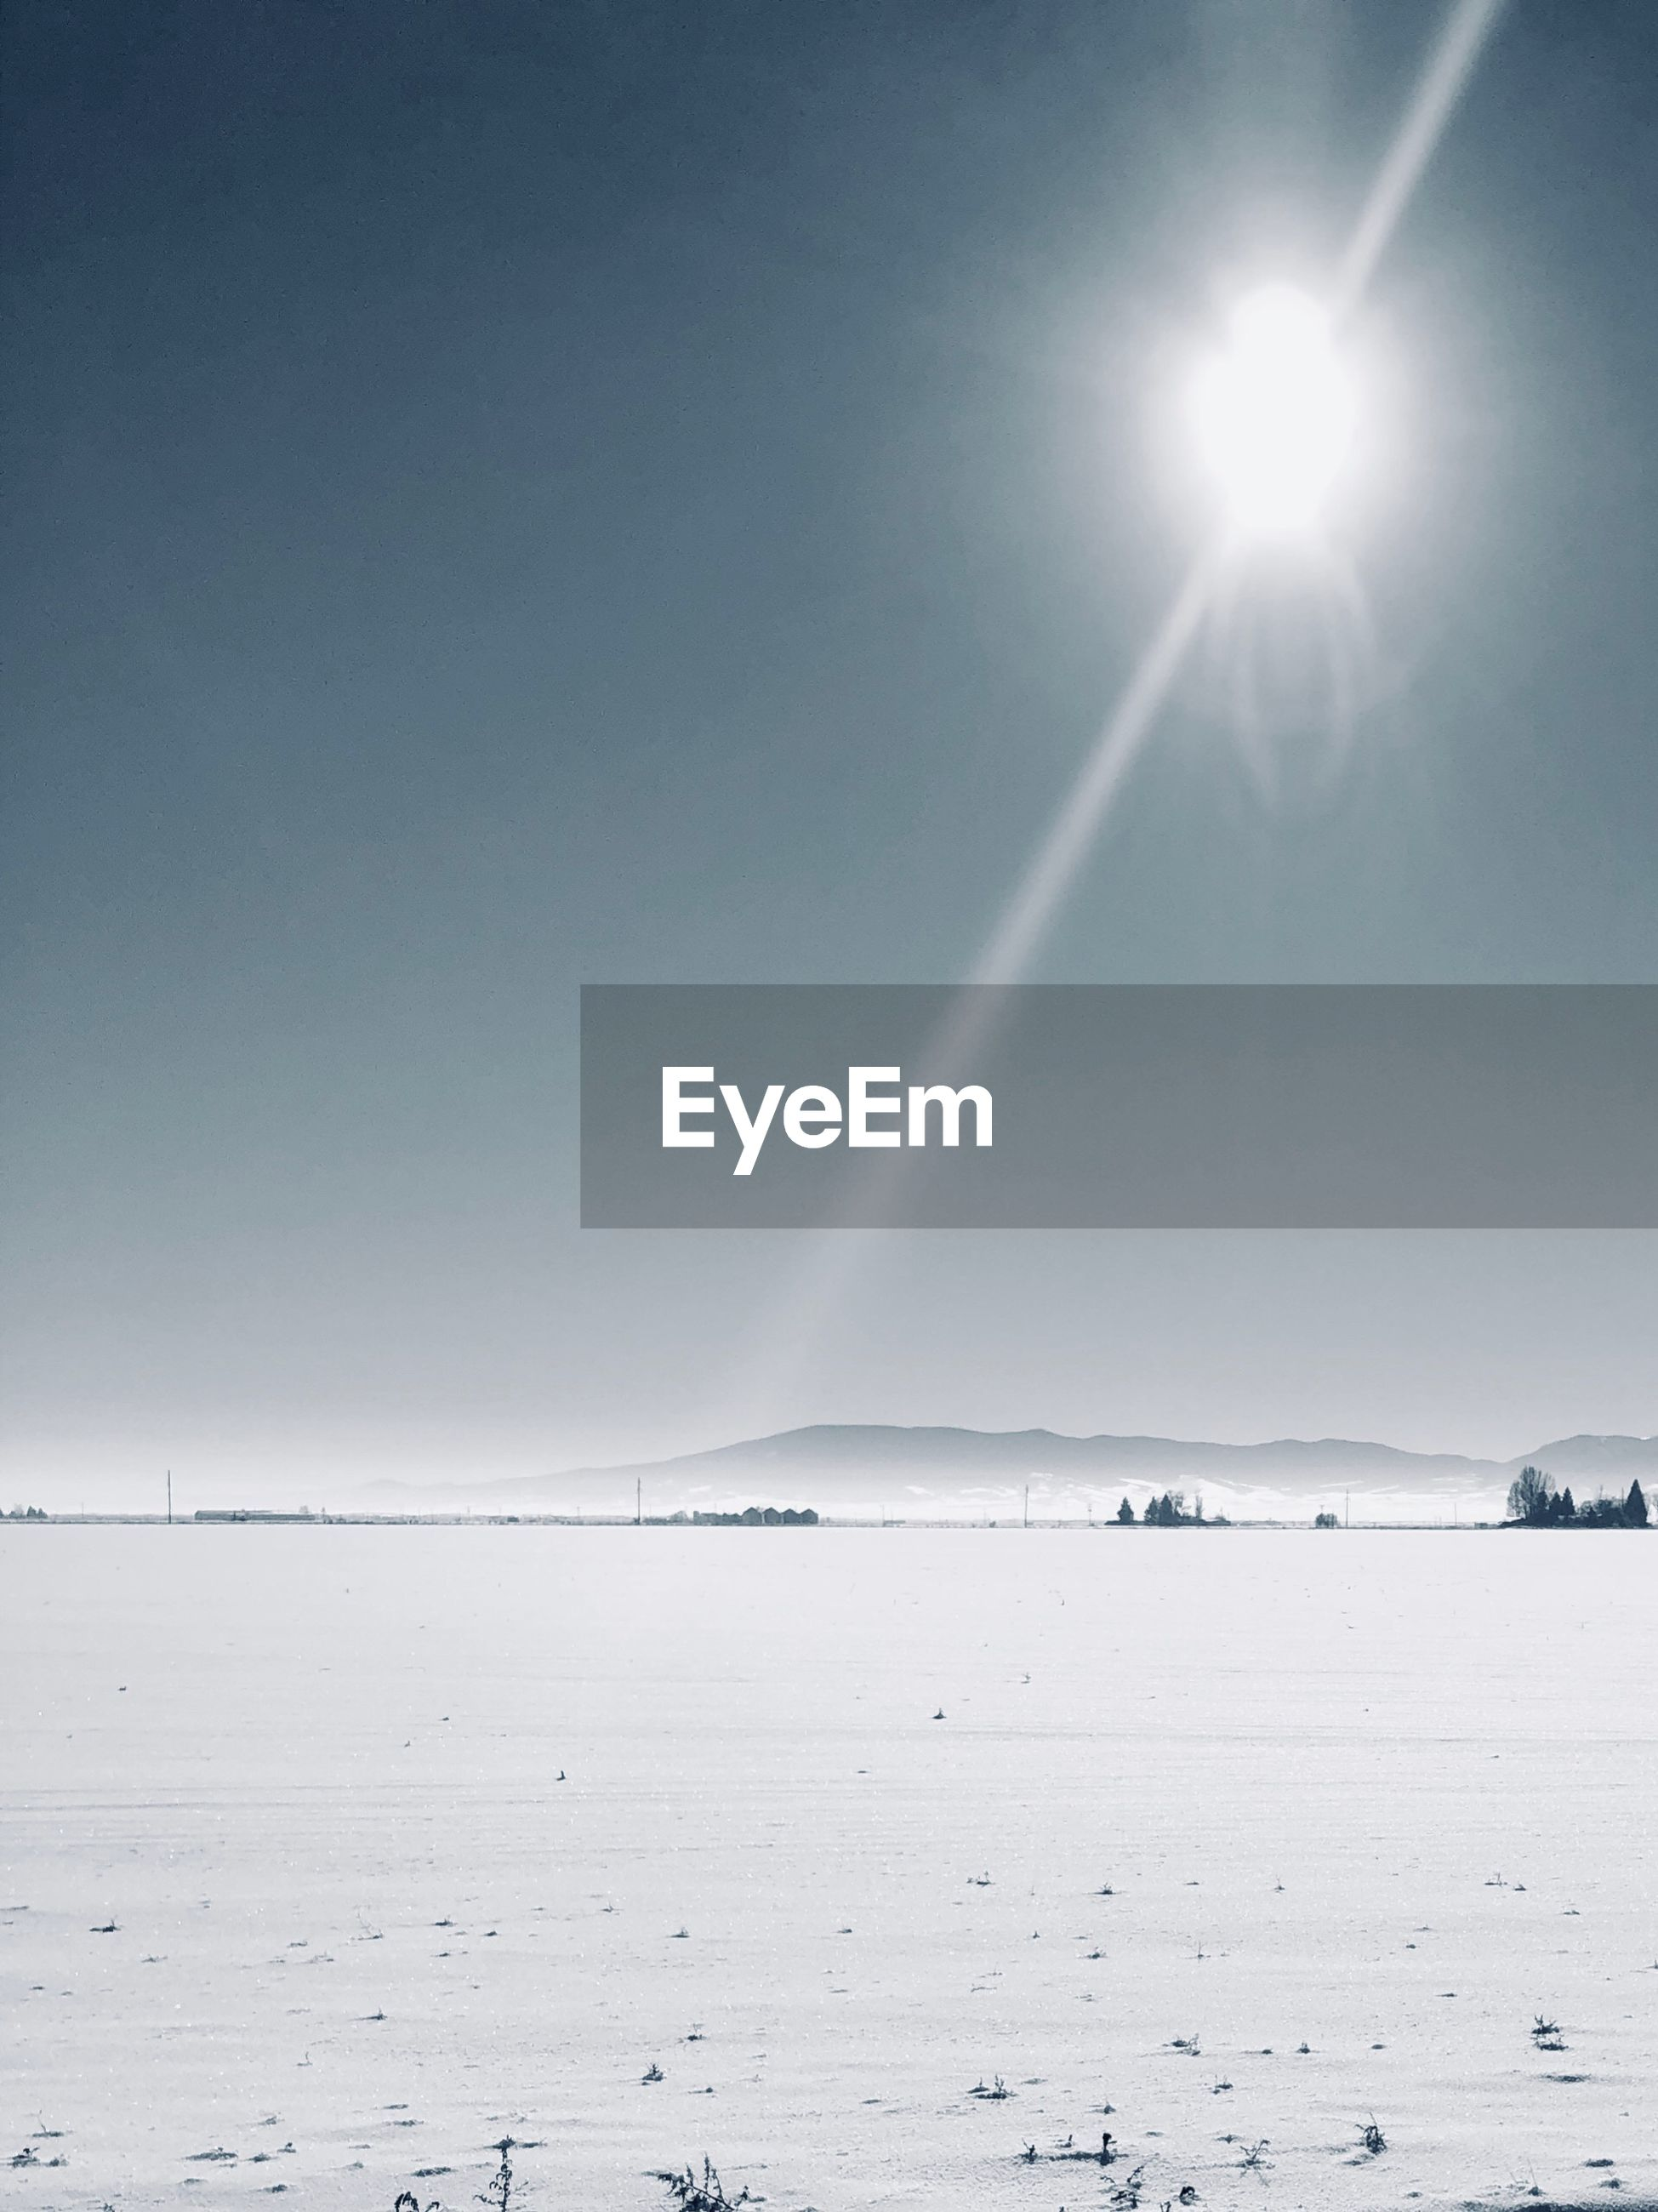 SCENIC VIEW OF SNOW COVERED LAND AGAINST BRIGHT SUN IN SKY